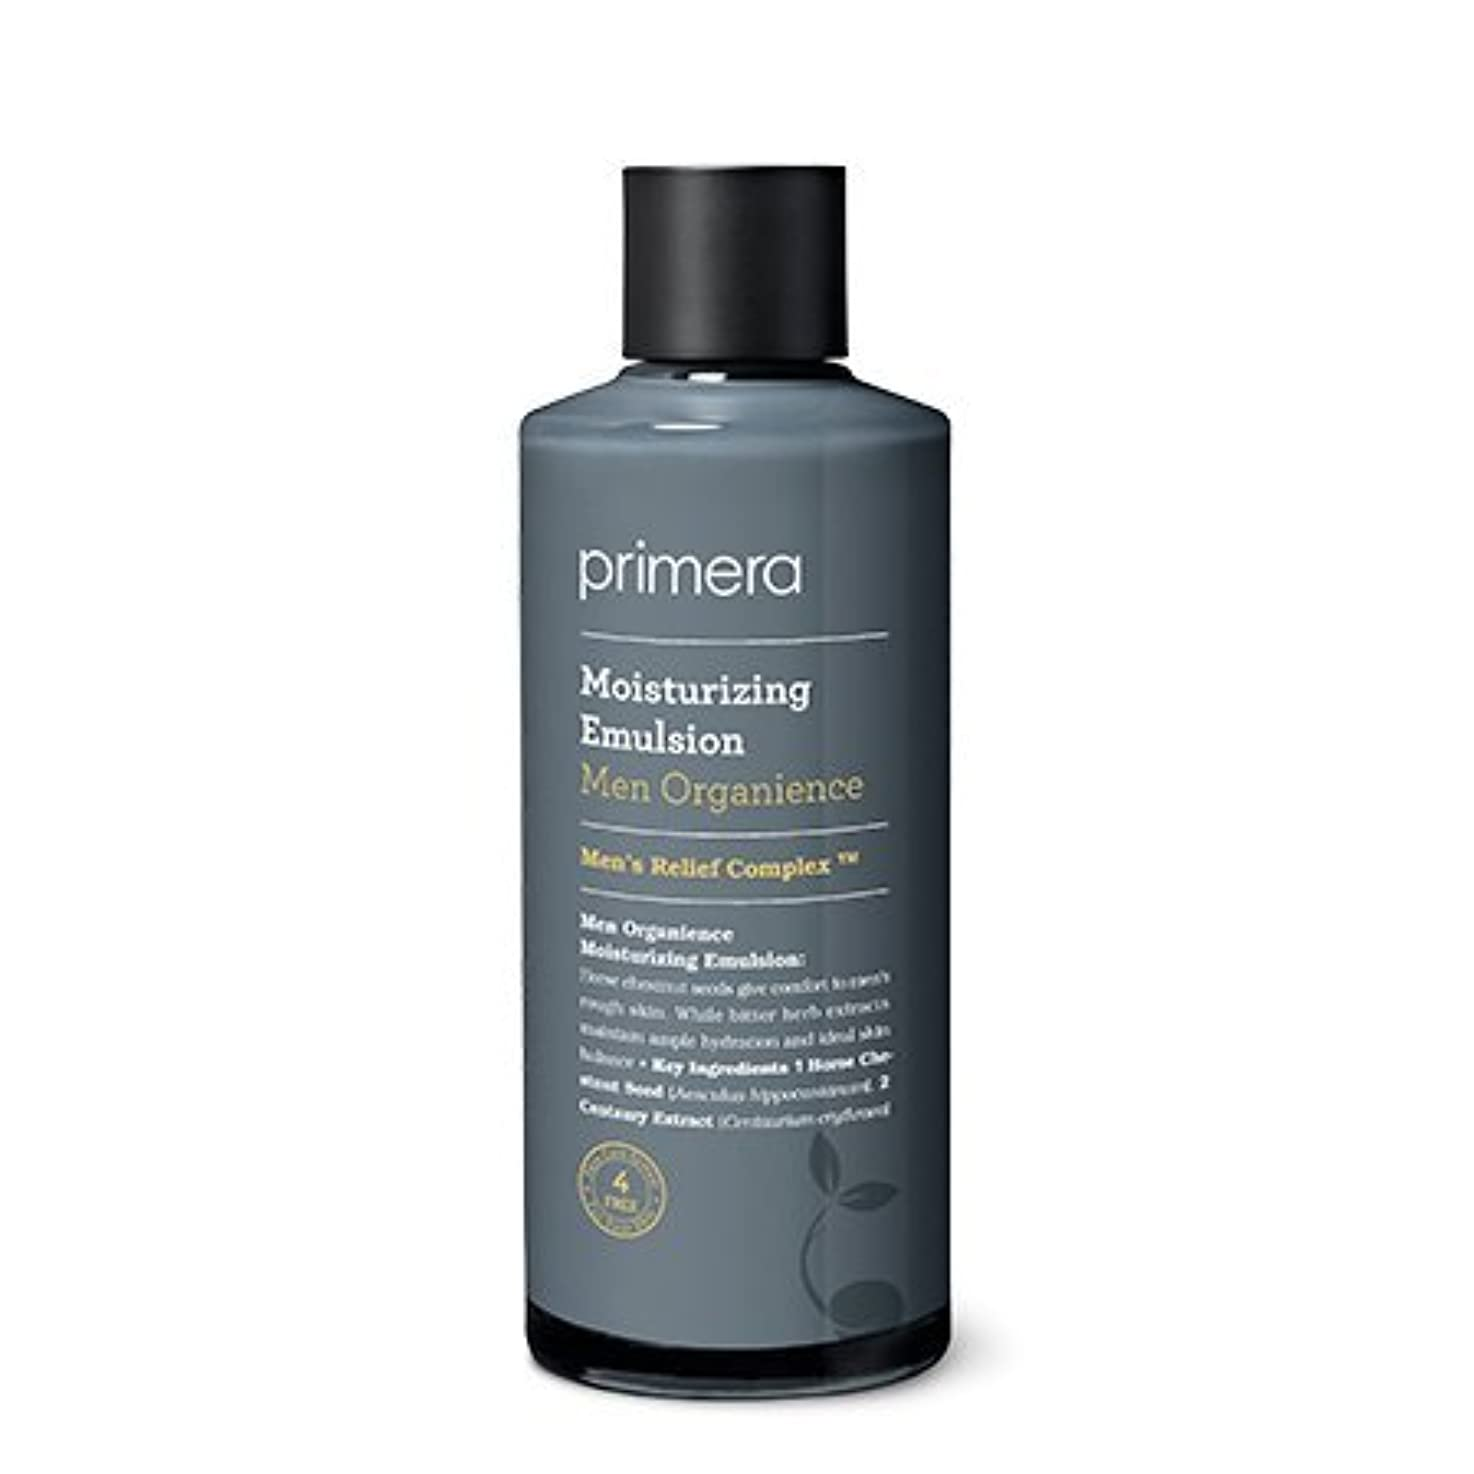 会話型答えめまいが【Primera】Men Organience Moisturizing Emulsion - 150ml (韓国直送品) (SHOPPINGINSTAGRAM)